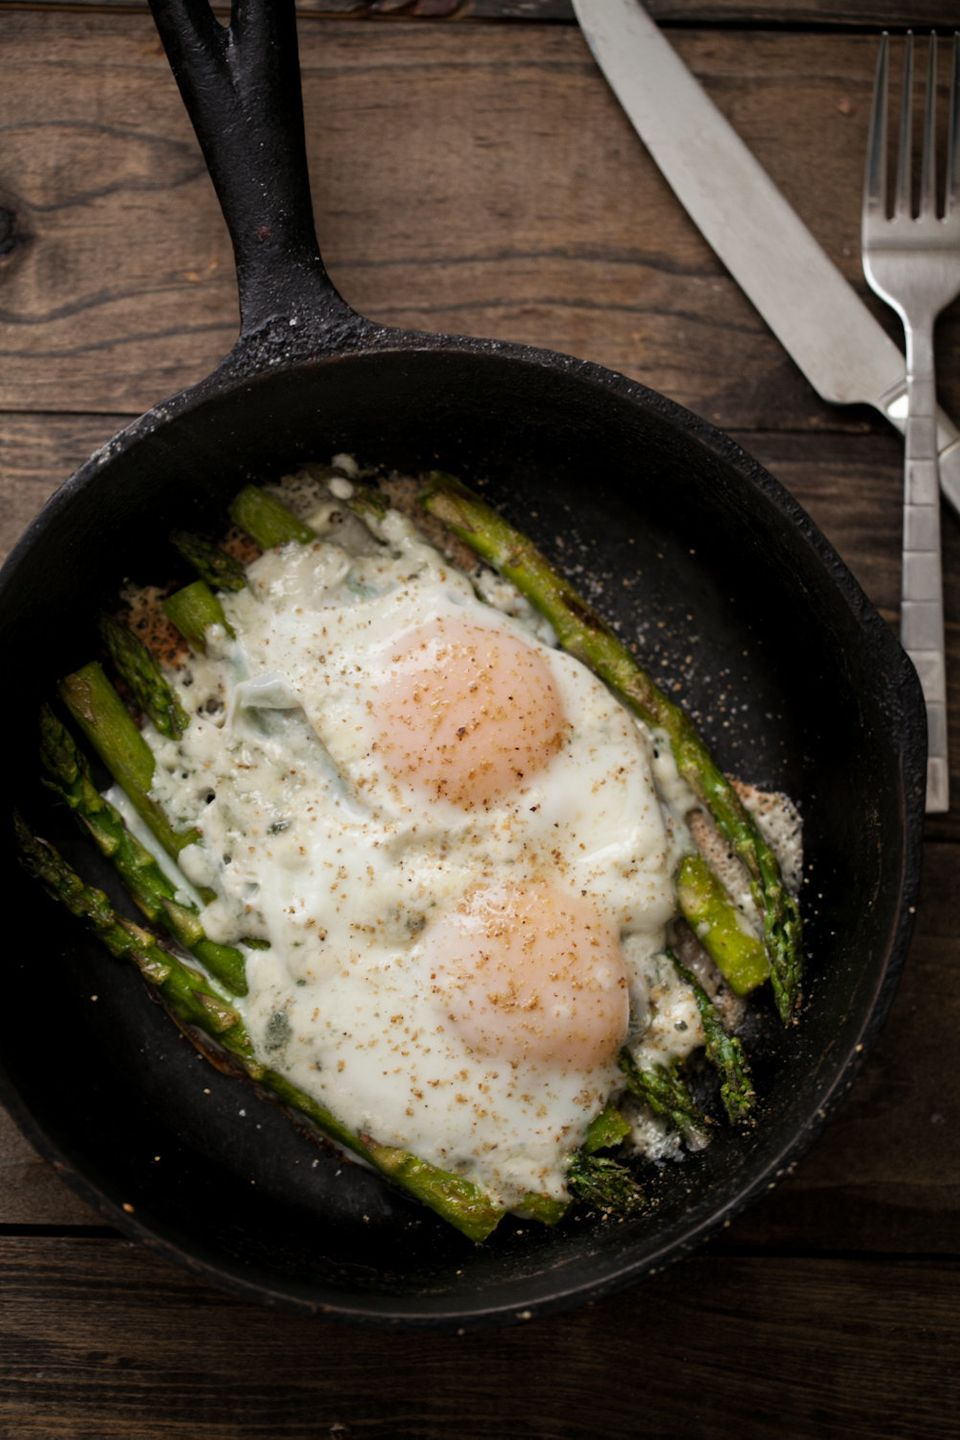 "<strong>Get the <a href=""http://naturallyella.com/2013/05/03/asparagus-and-eggs/"">Asparagus And Eggs recipe</a> from Nat"